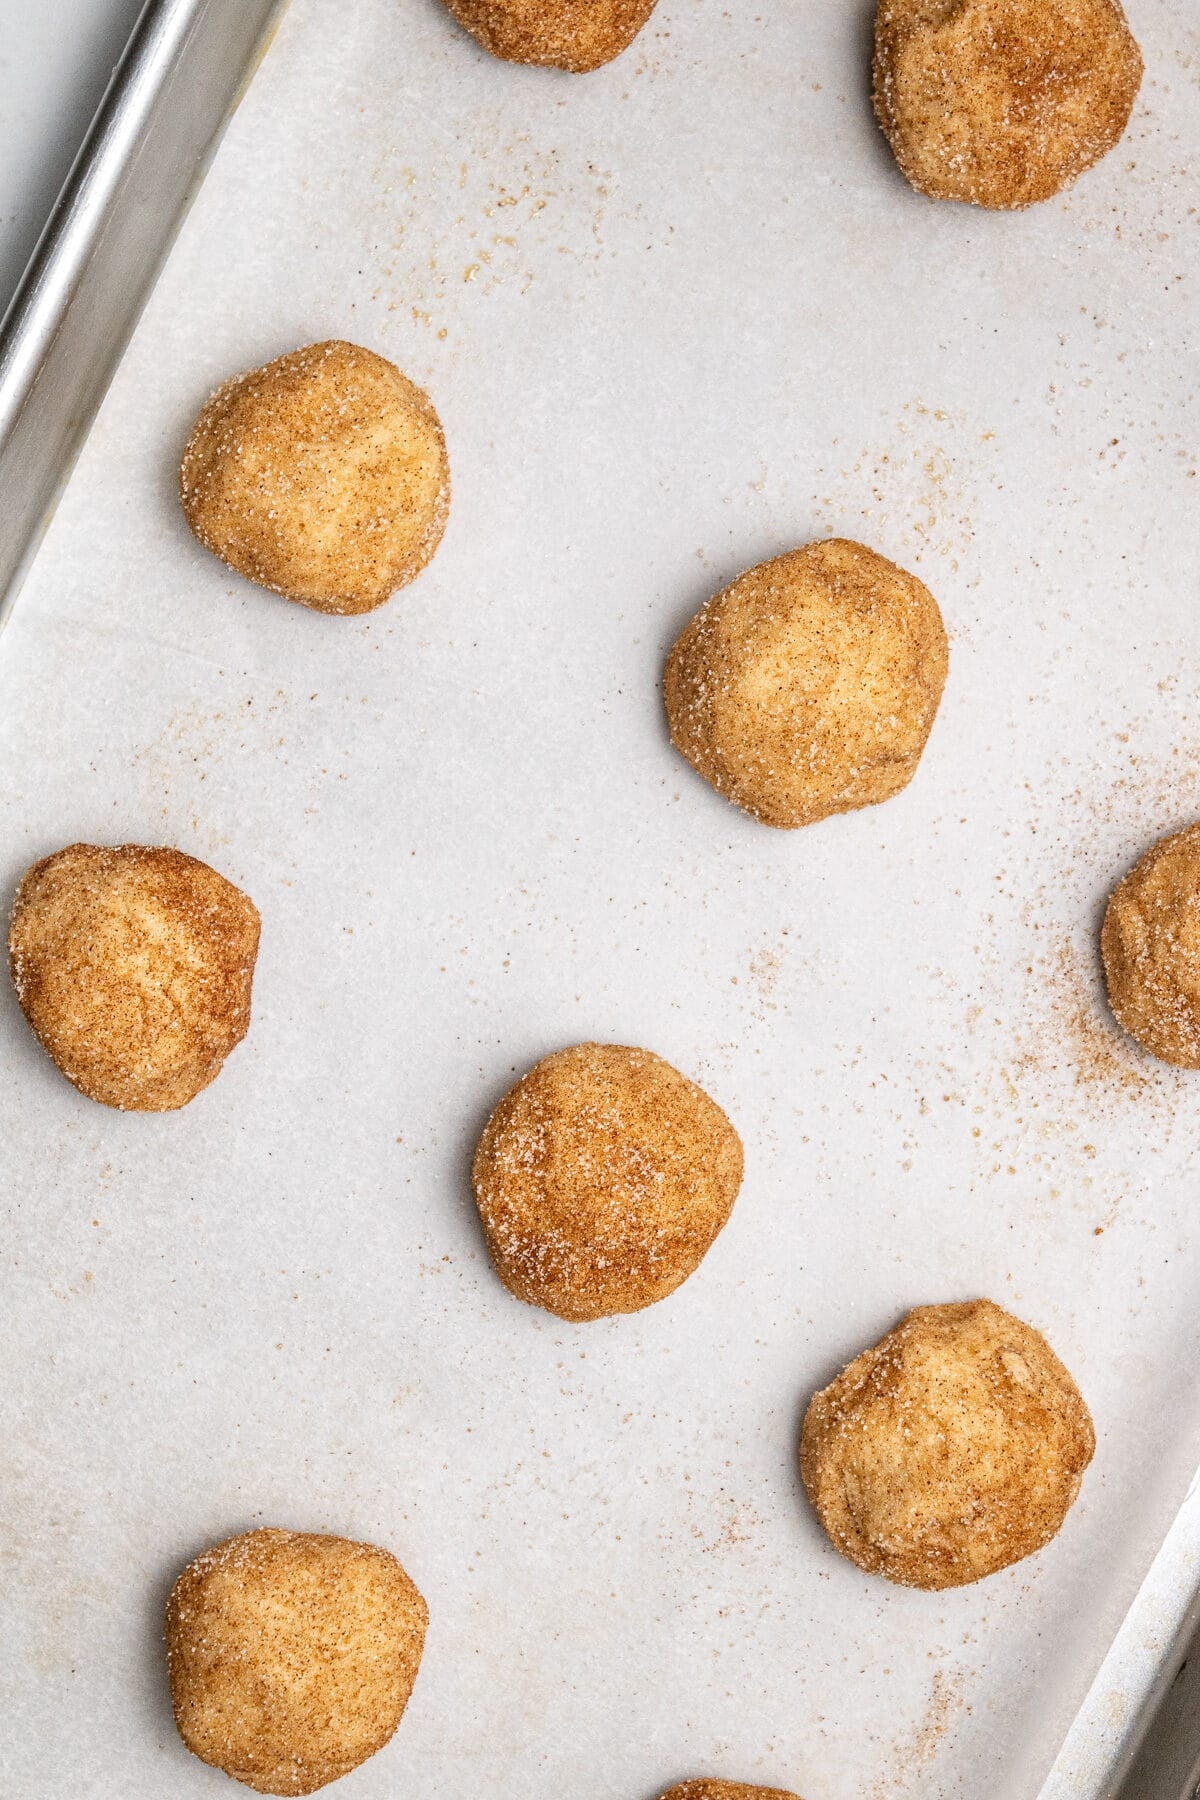 a baking sheet with snickerdoodle cookies before being baked